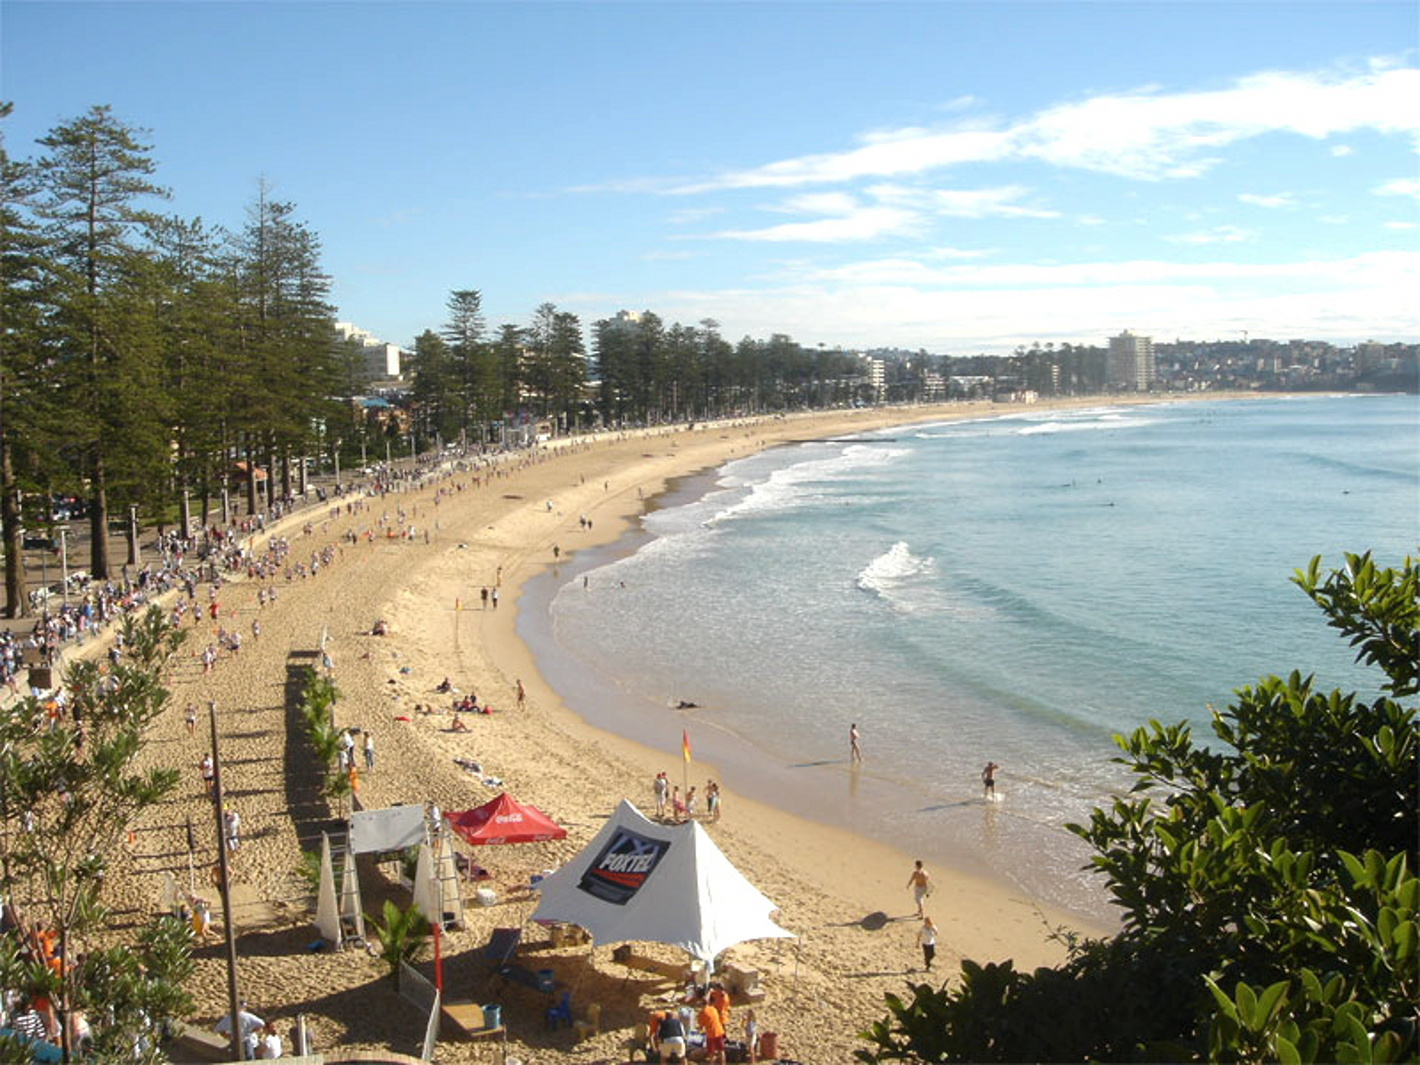 Manly Beach in New South Wales - Australia